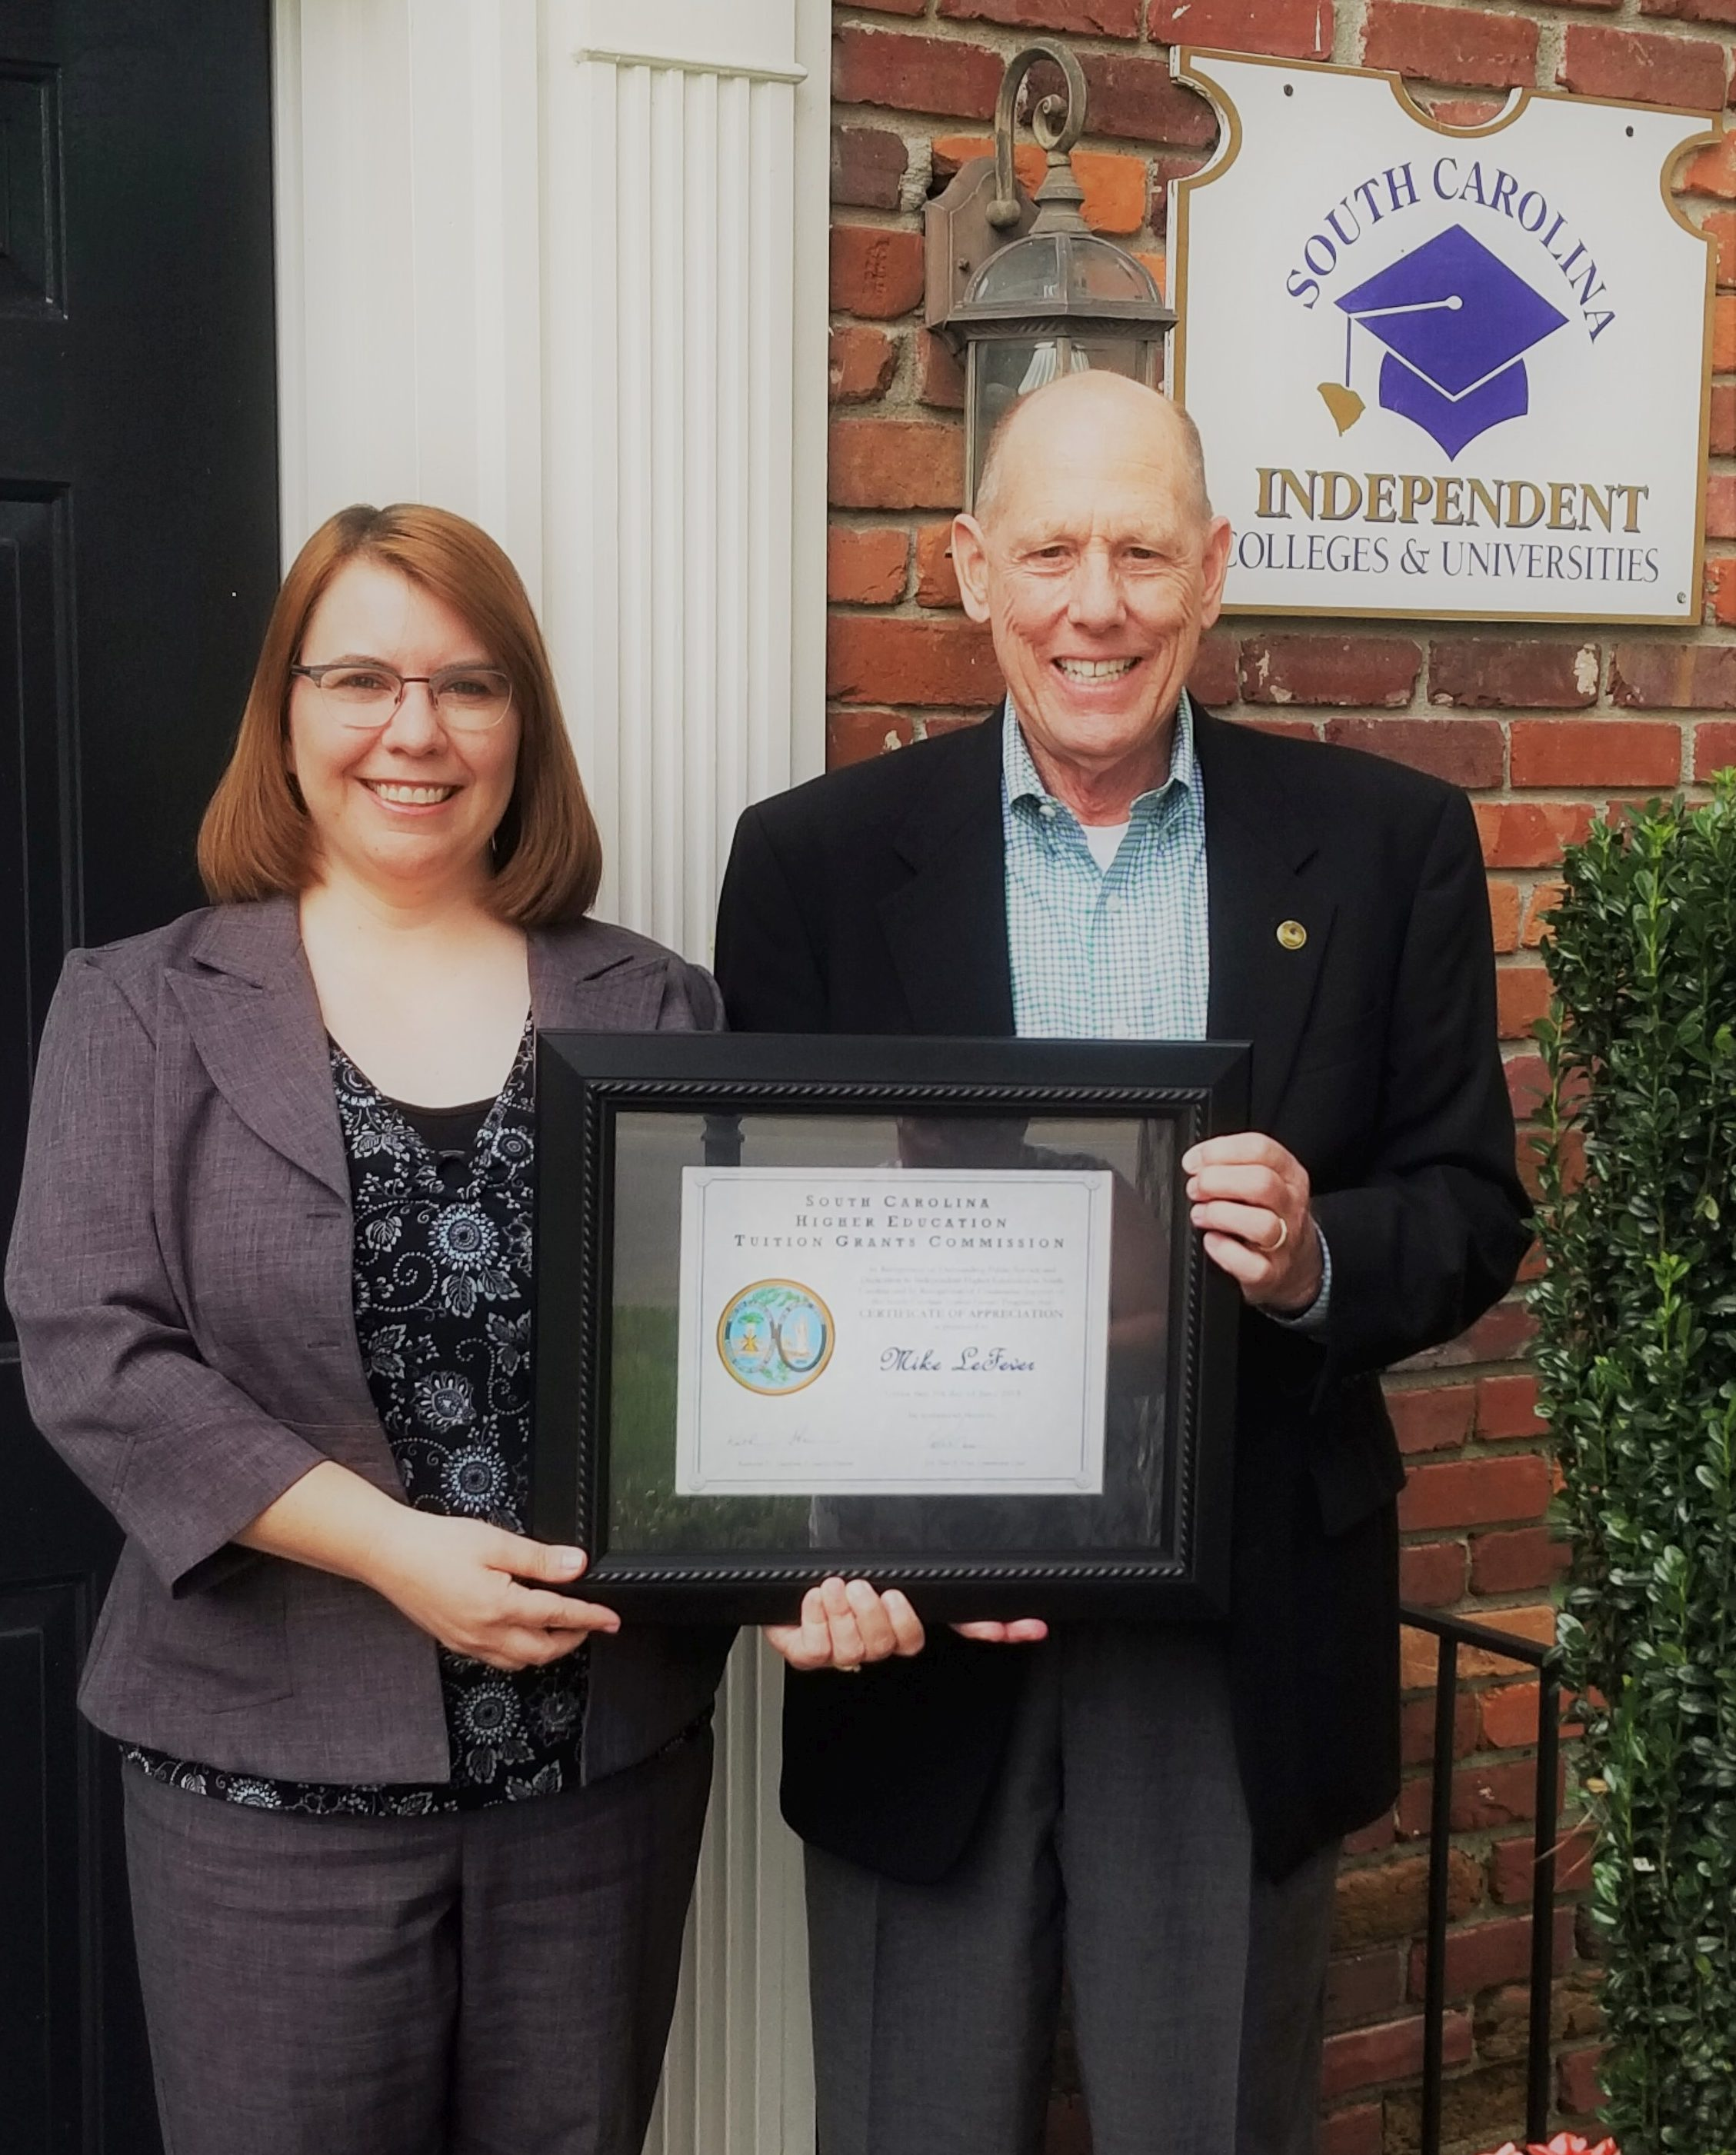 Katie Harrison, Executive Director of the SC Tuition Grants Commission, presented a Certificate of Appreciation to SCICU President and CEO Mike LeFever at the commission's June board meeting.